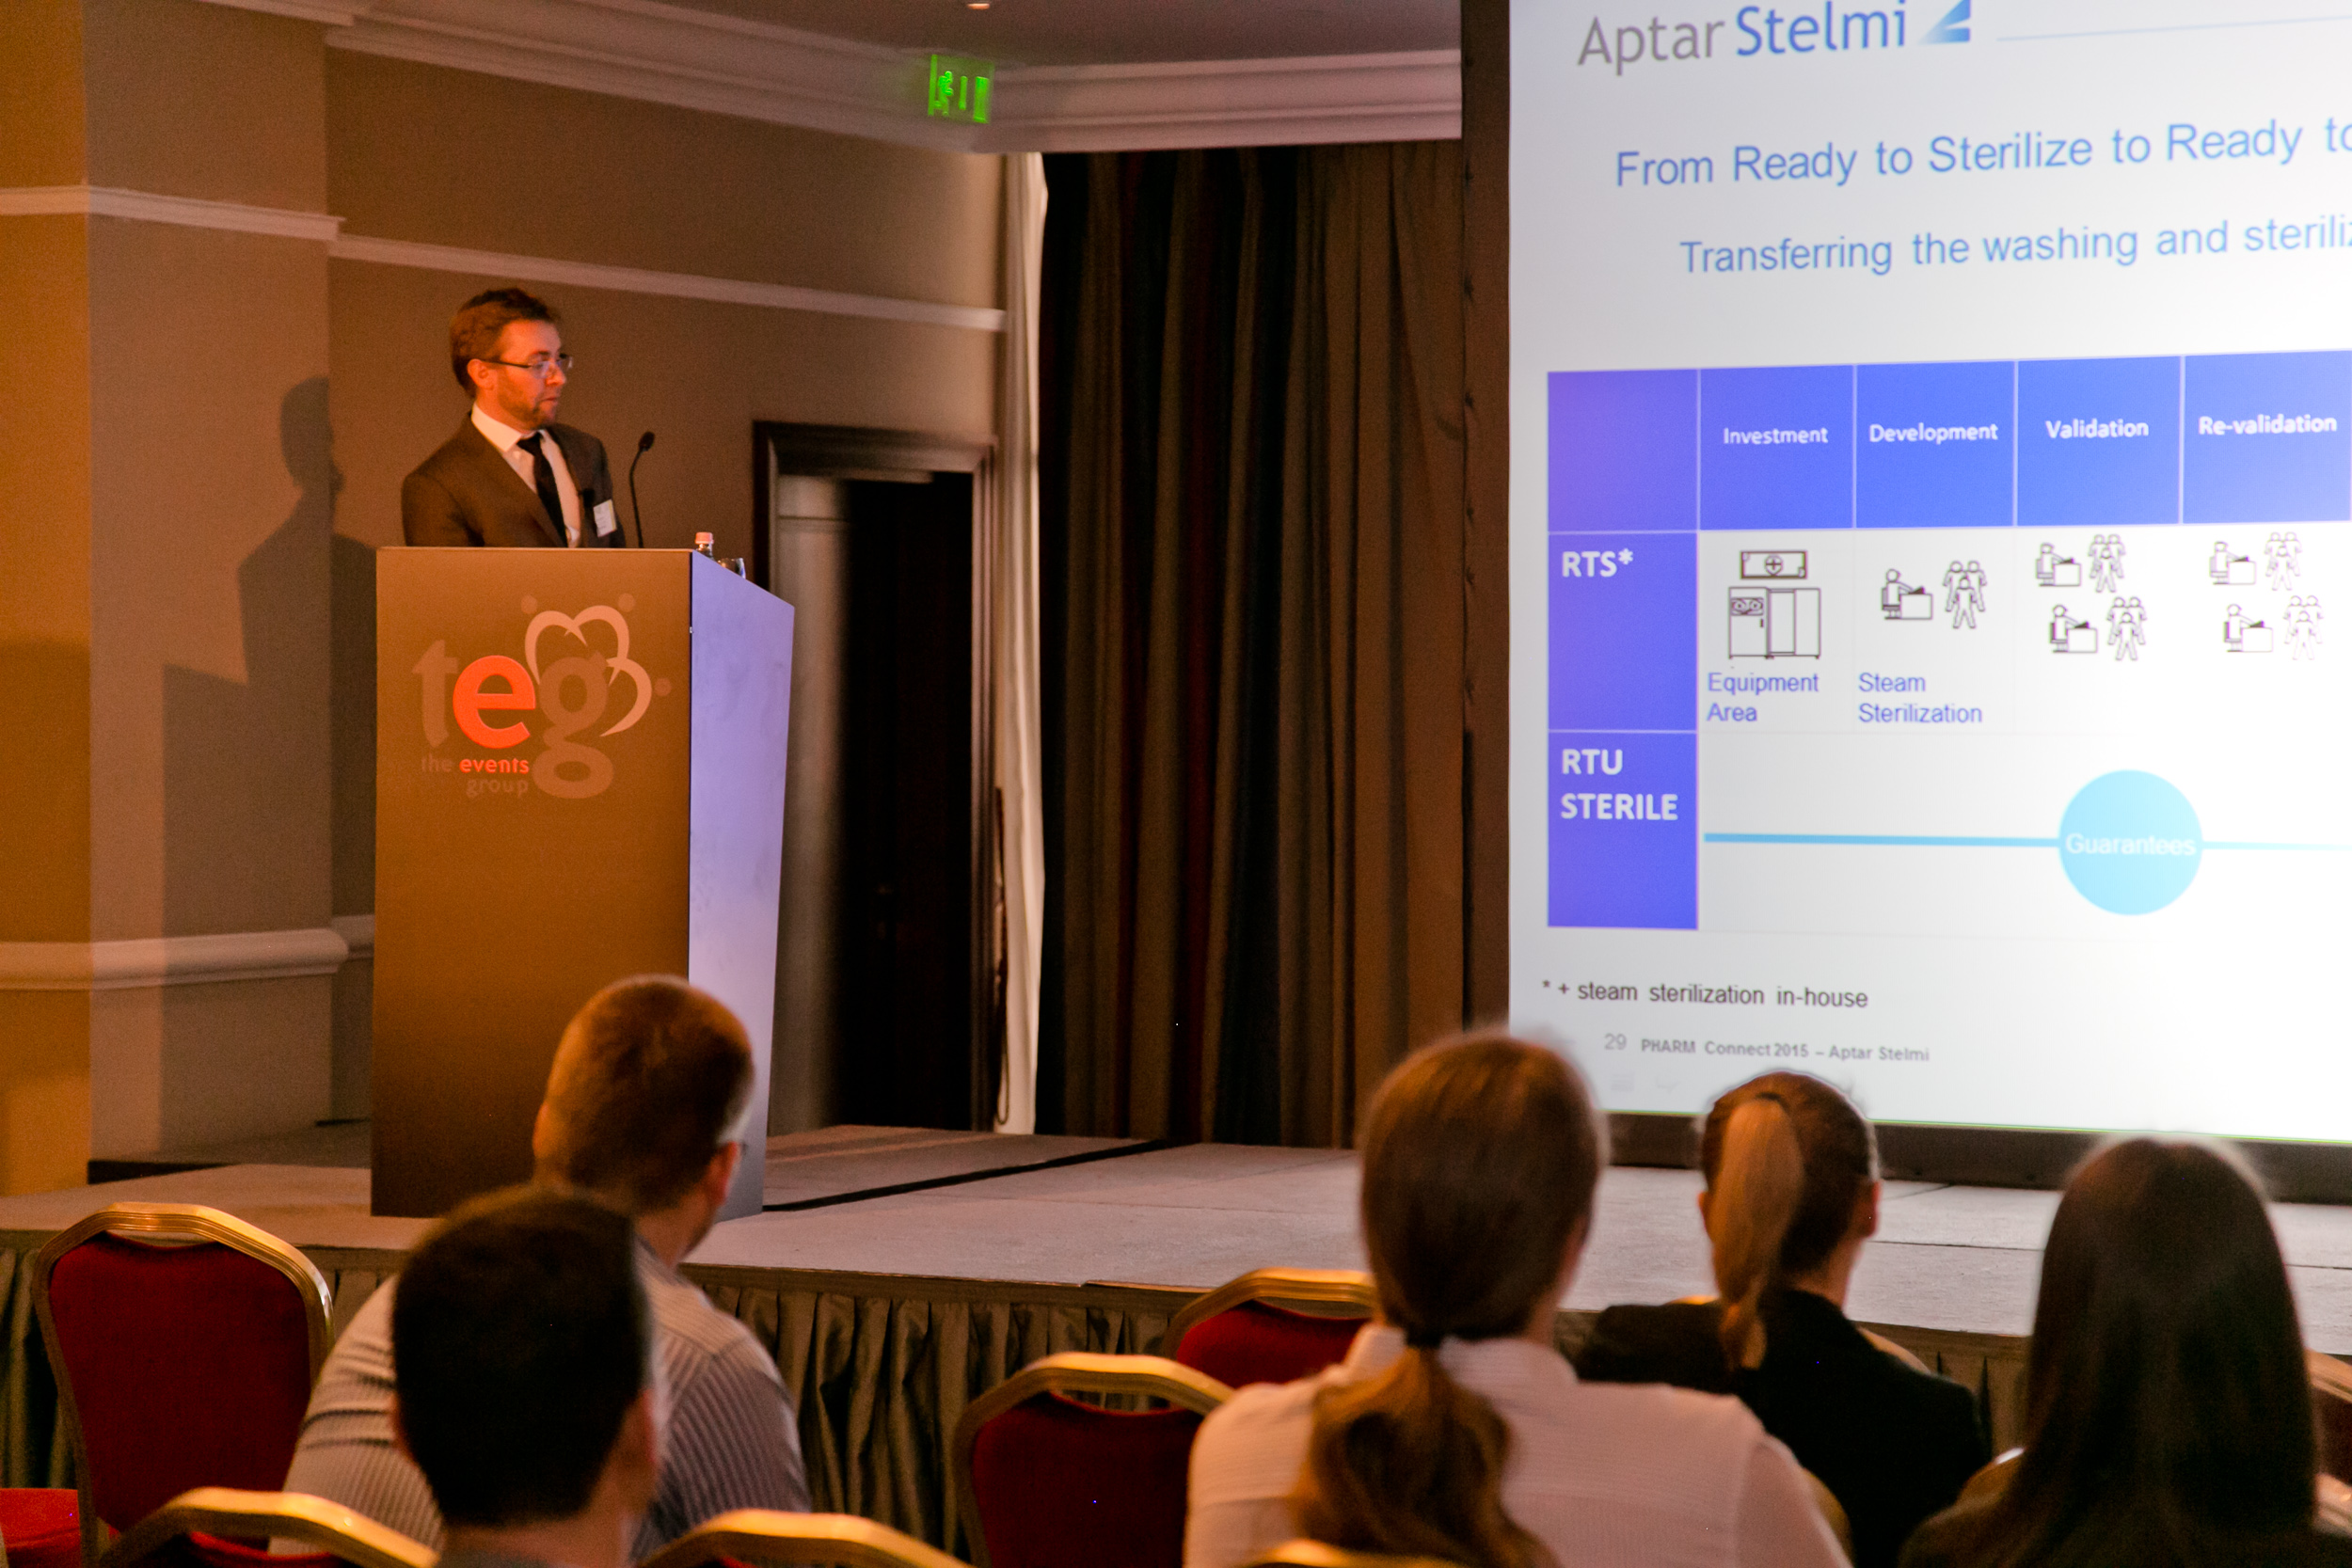 Bruno Morchain, Aptar Stelmi, Keynote presentation at PHARM Connect 2015